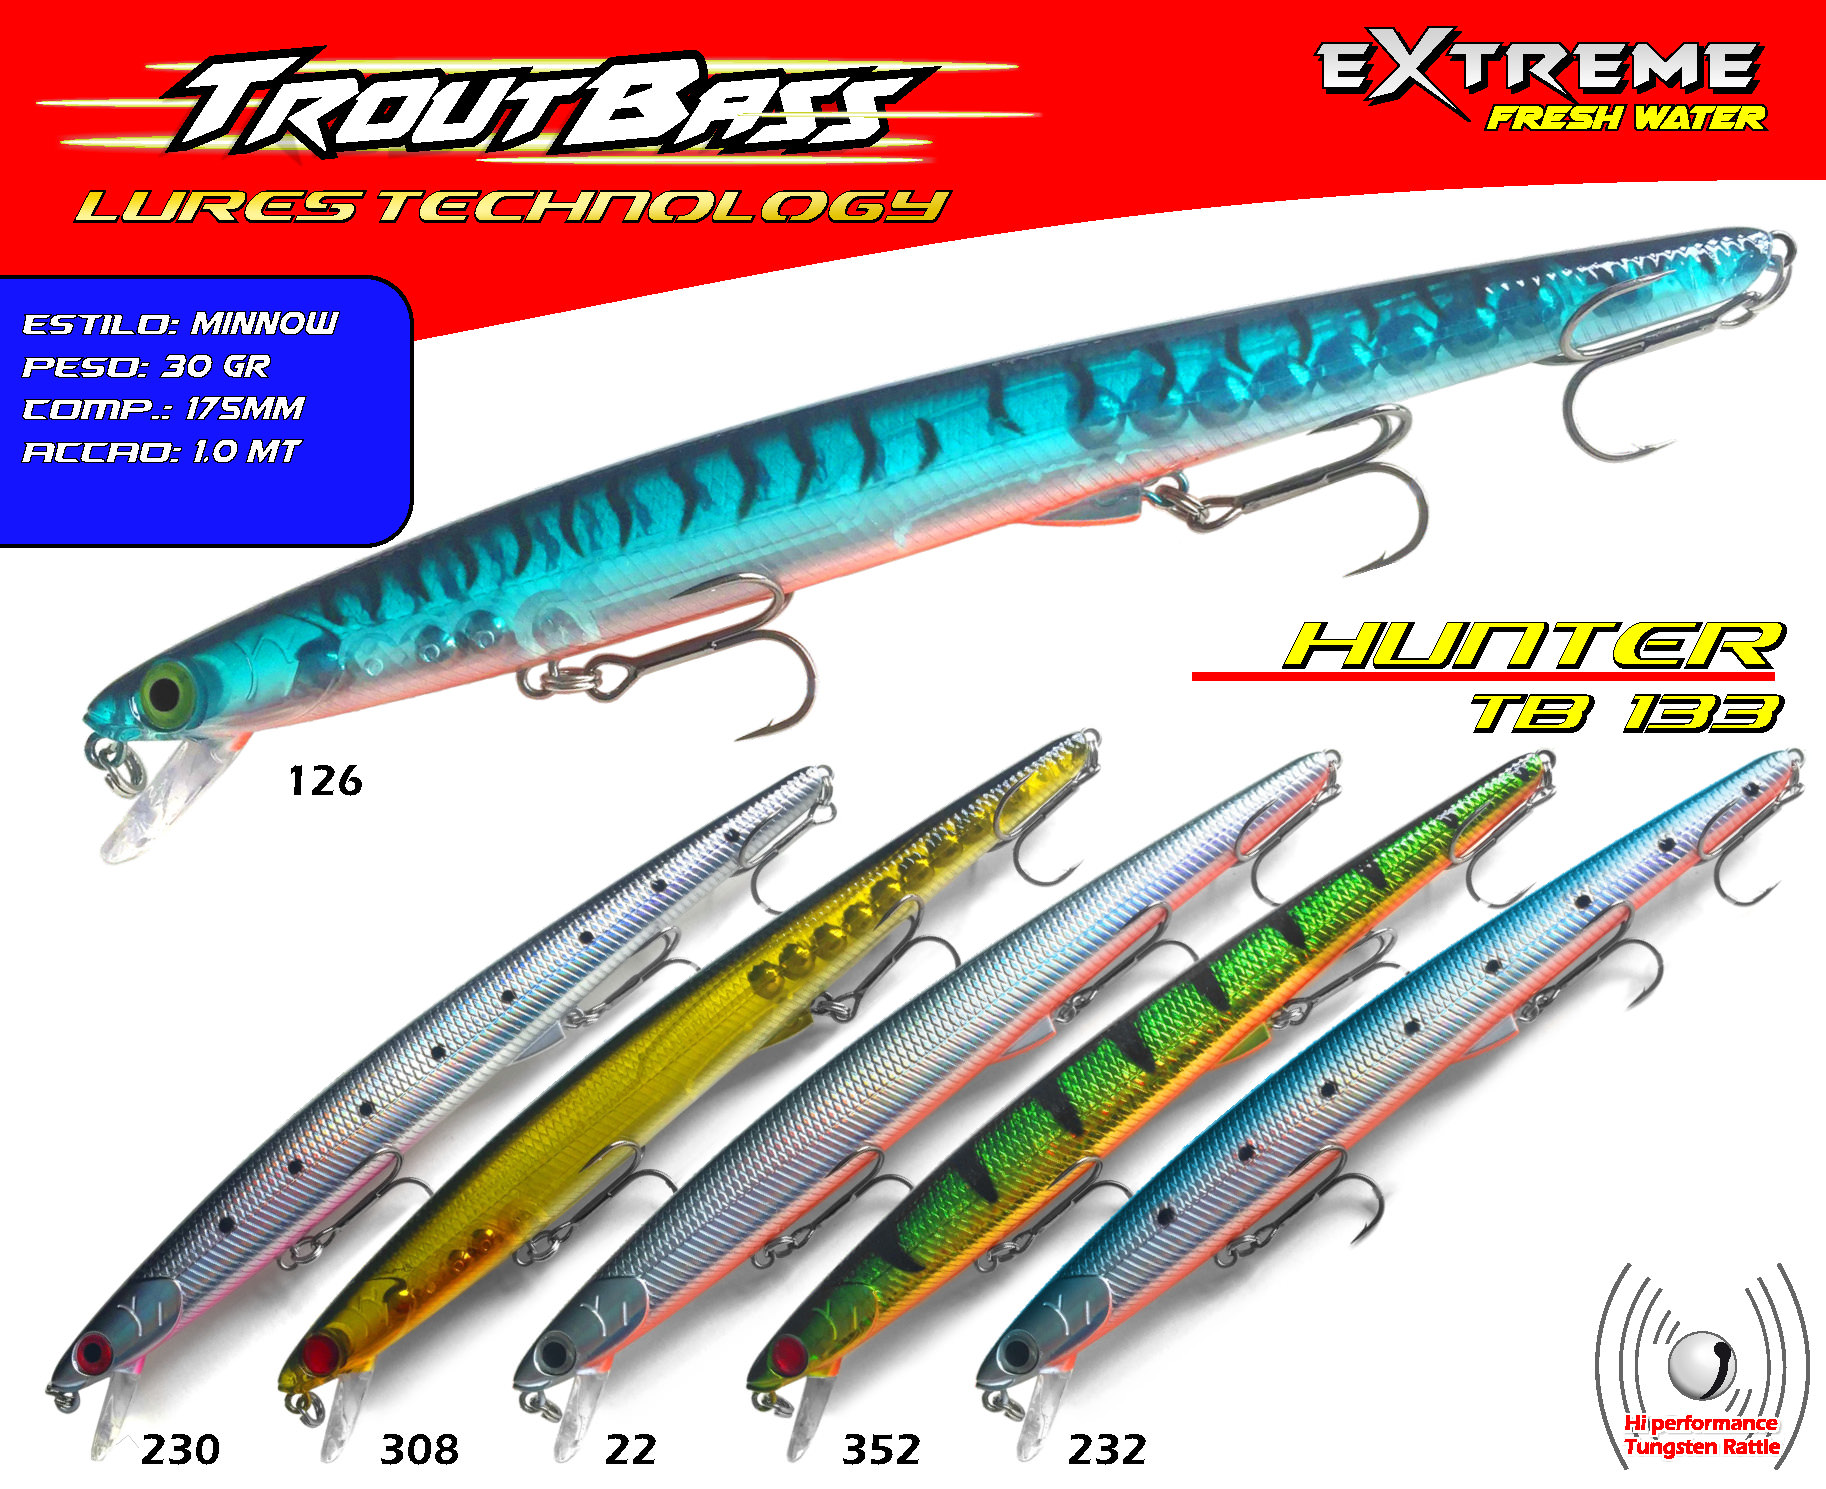 Troutbass Hunter TB 133